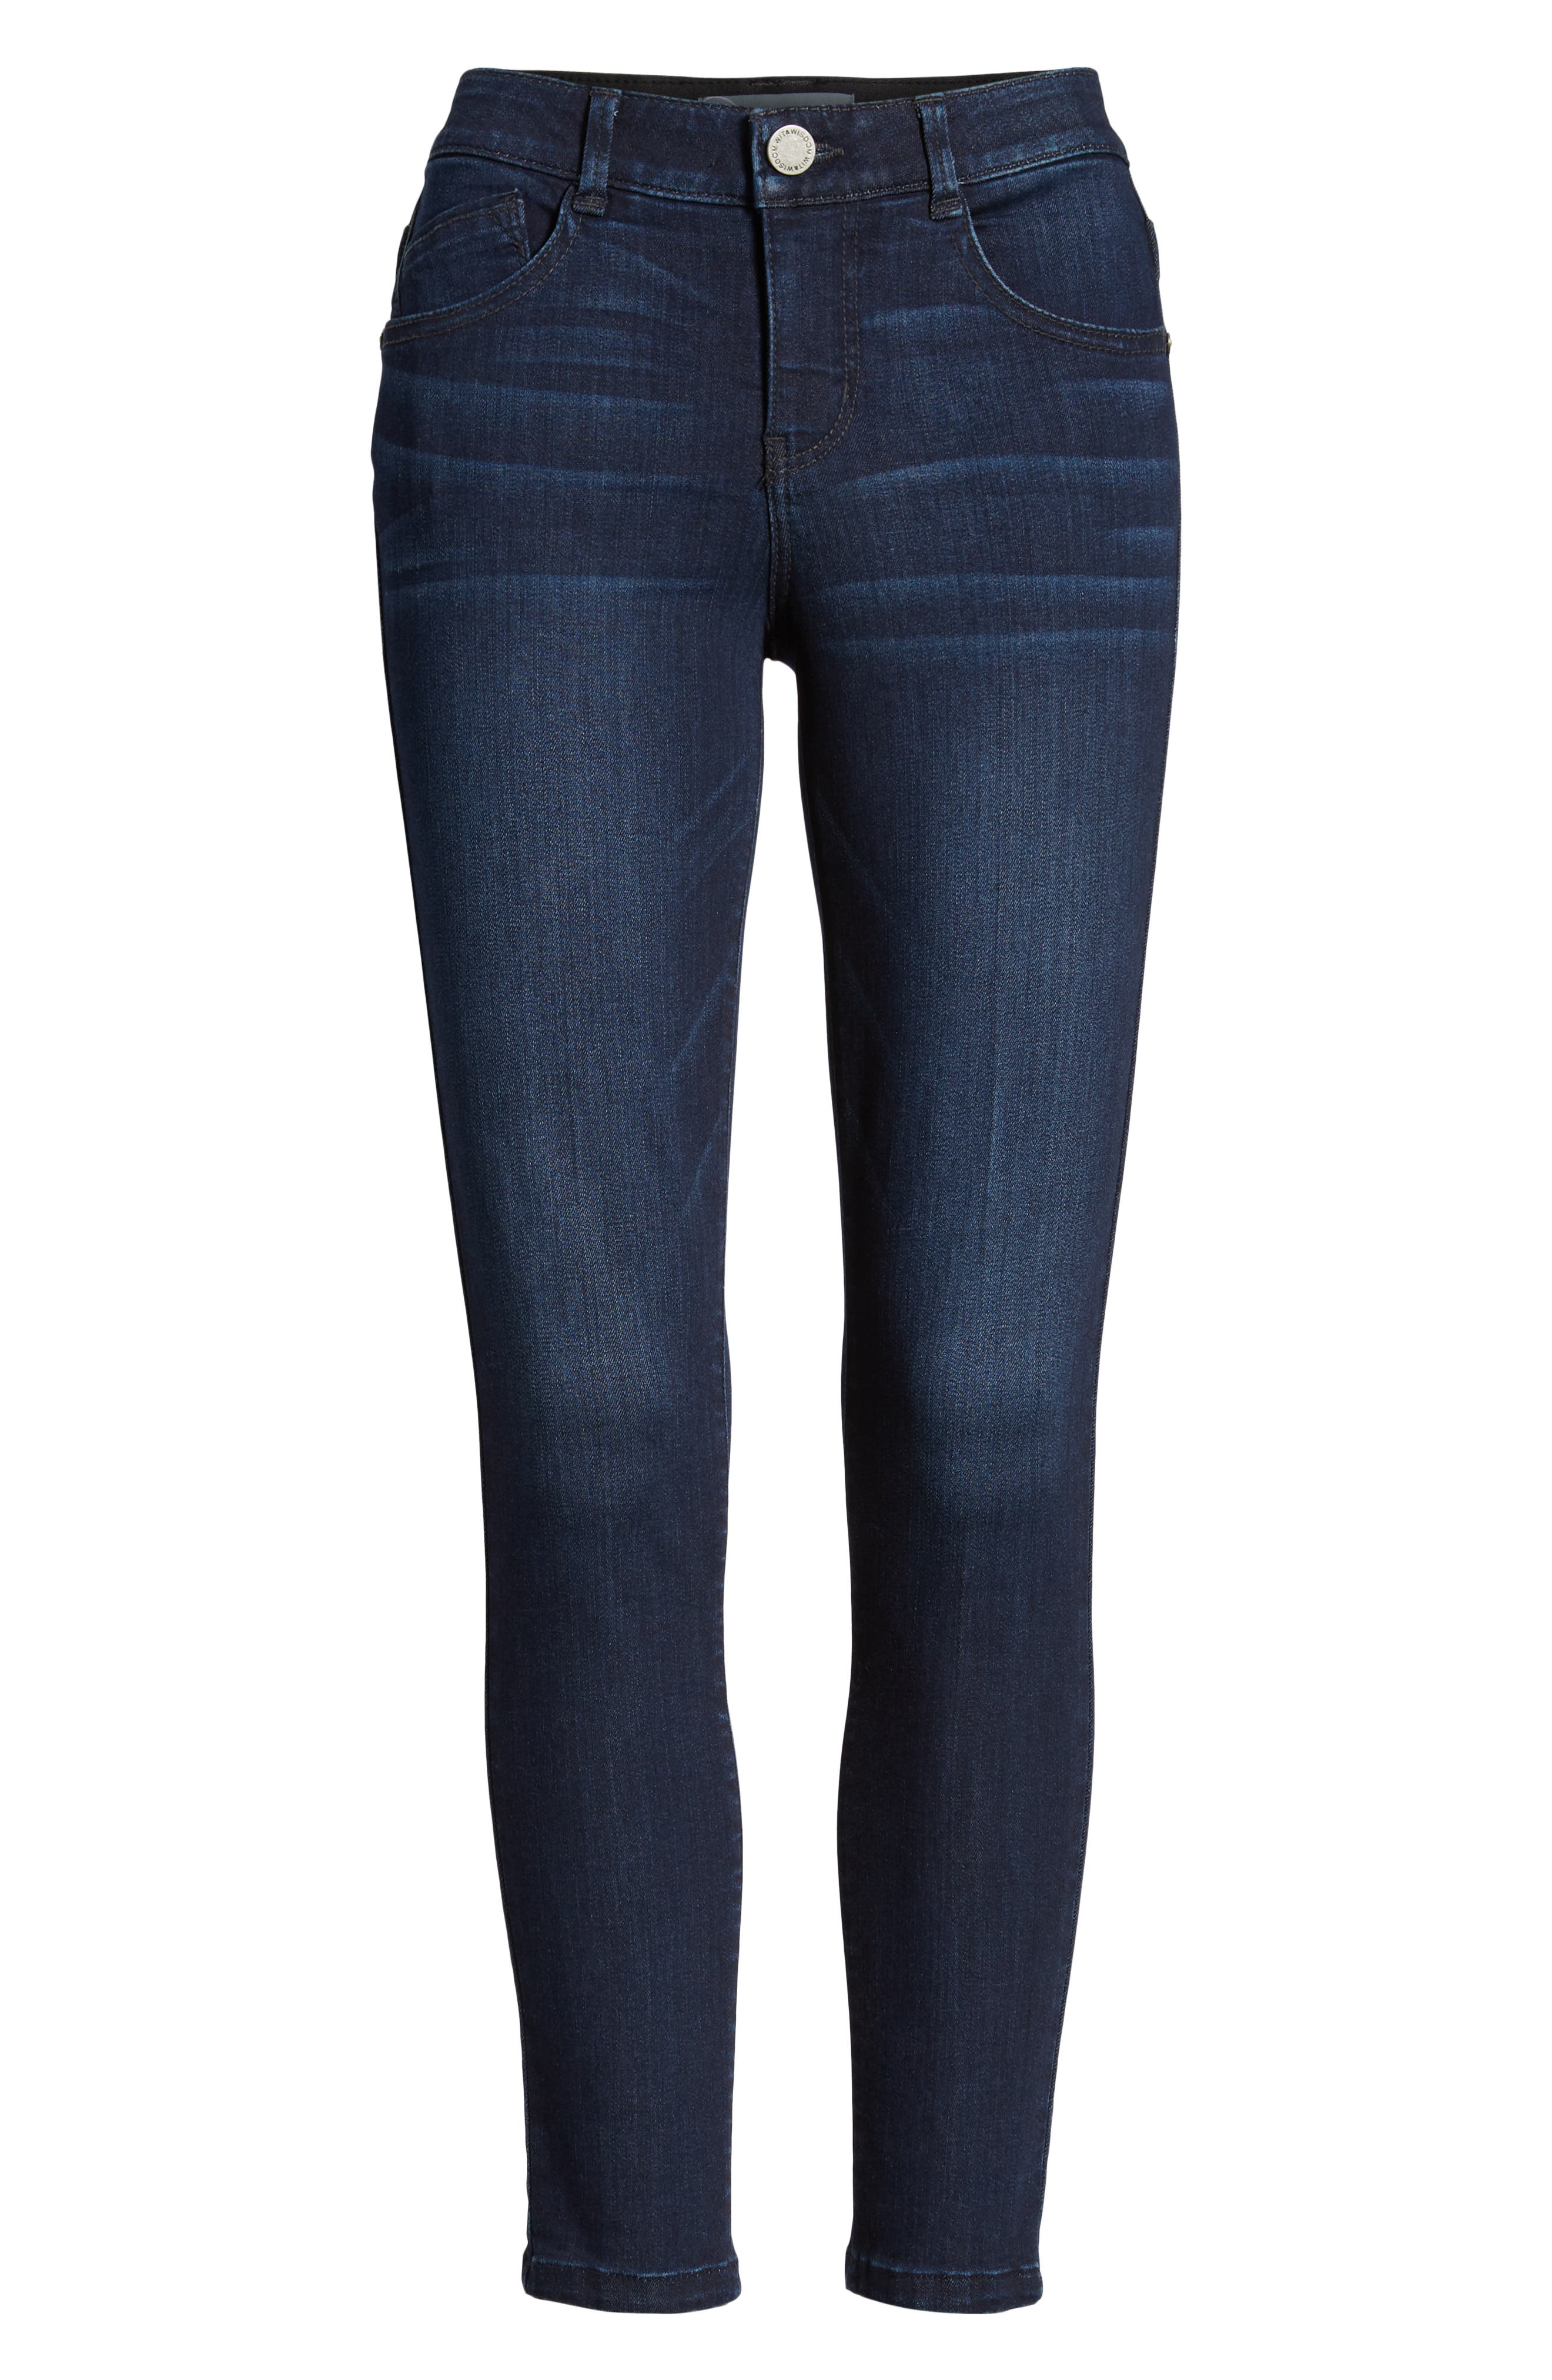 Ab-solution Skinny Jeans,                             Alternate thumbnail 7, color,                             In- Indigo